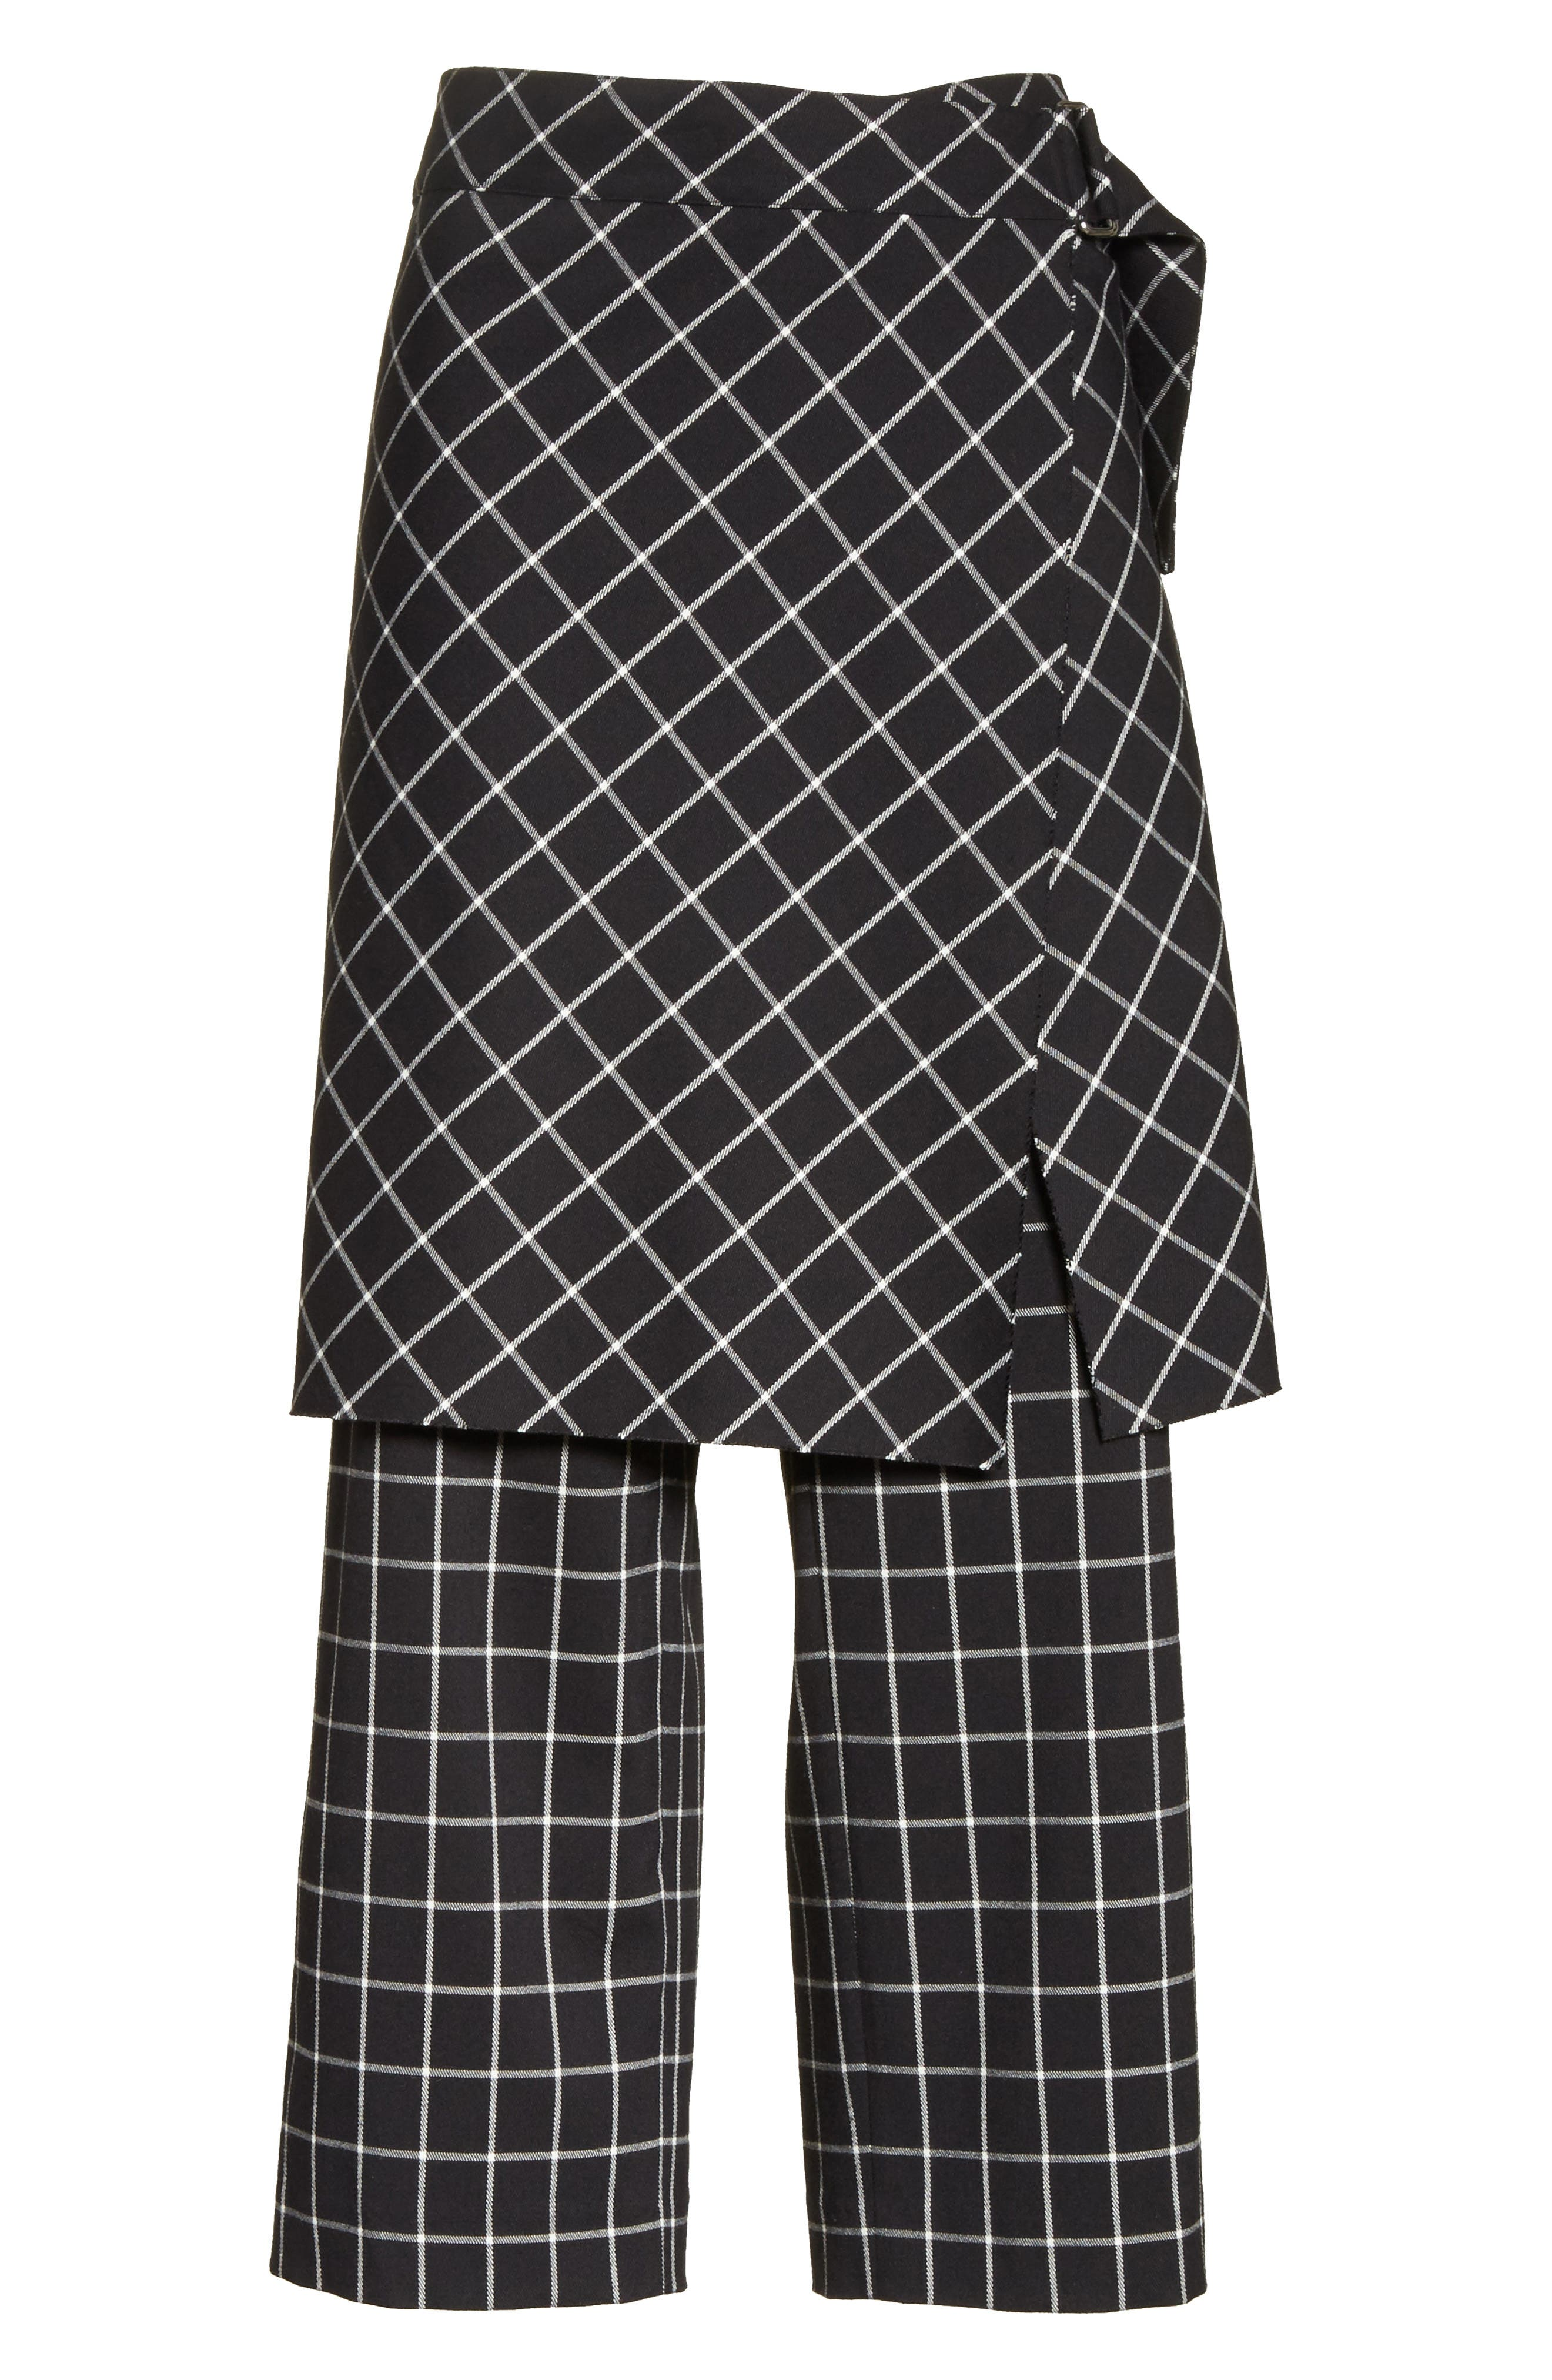 Grid Print Skirted Pants,                             Alternate thumbnail 6, color,                             004